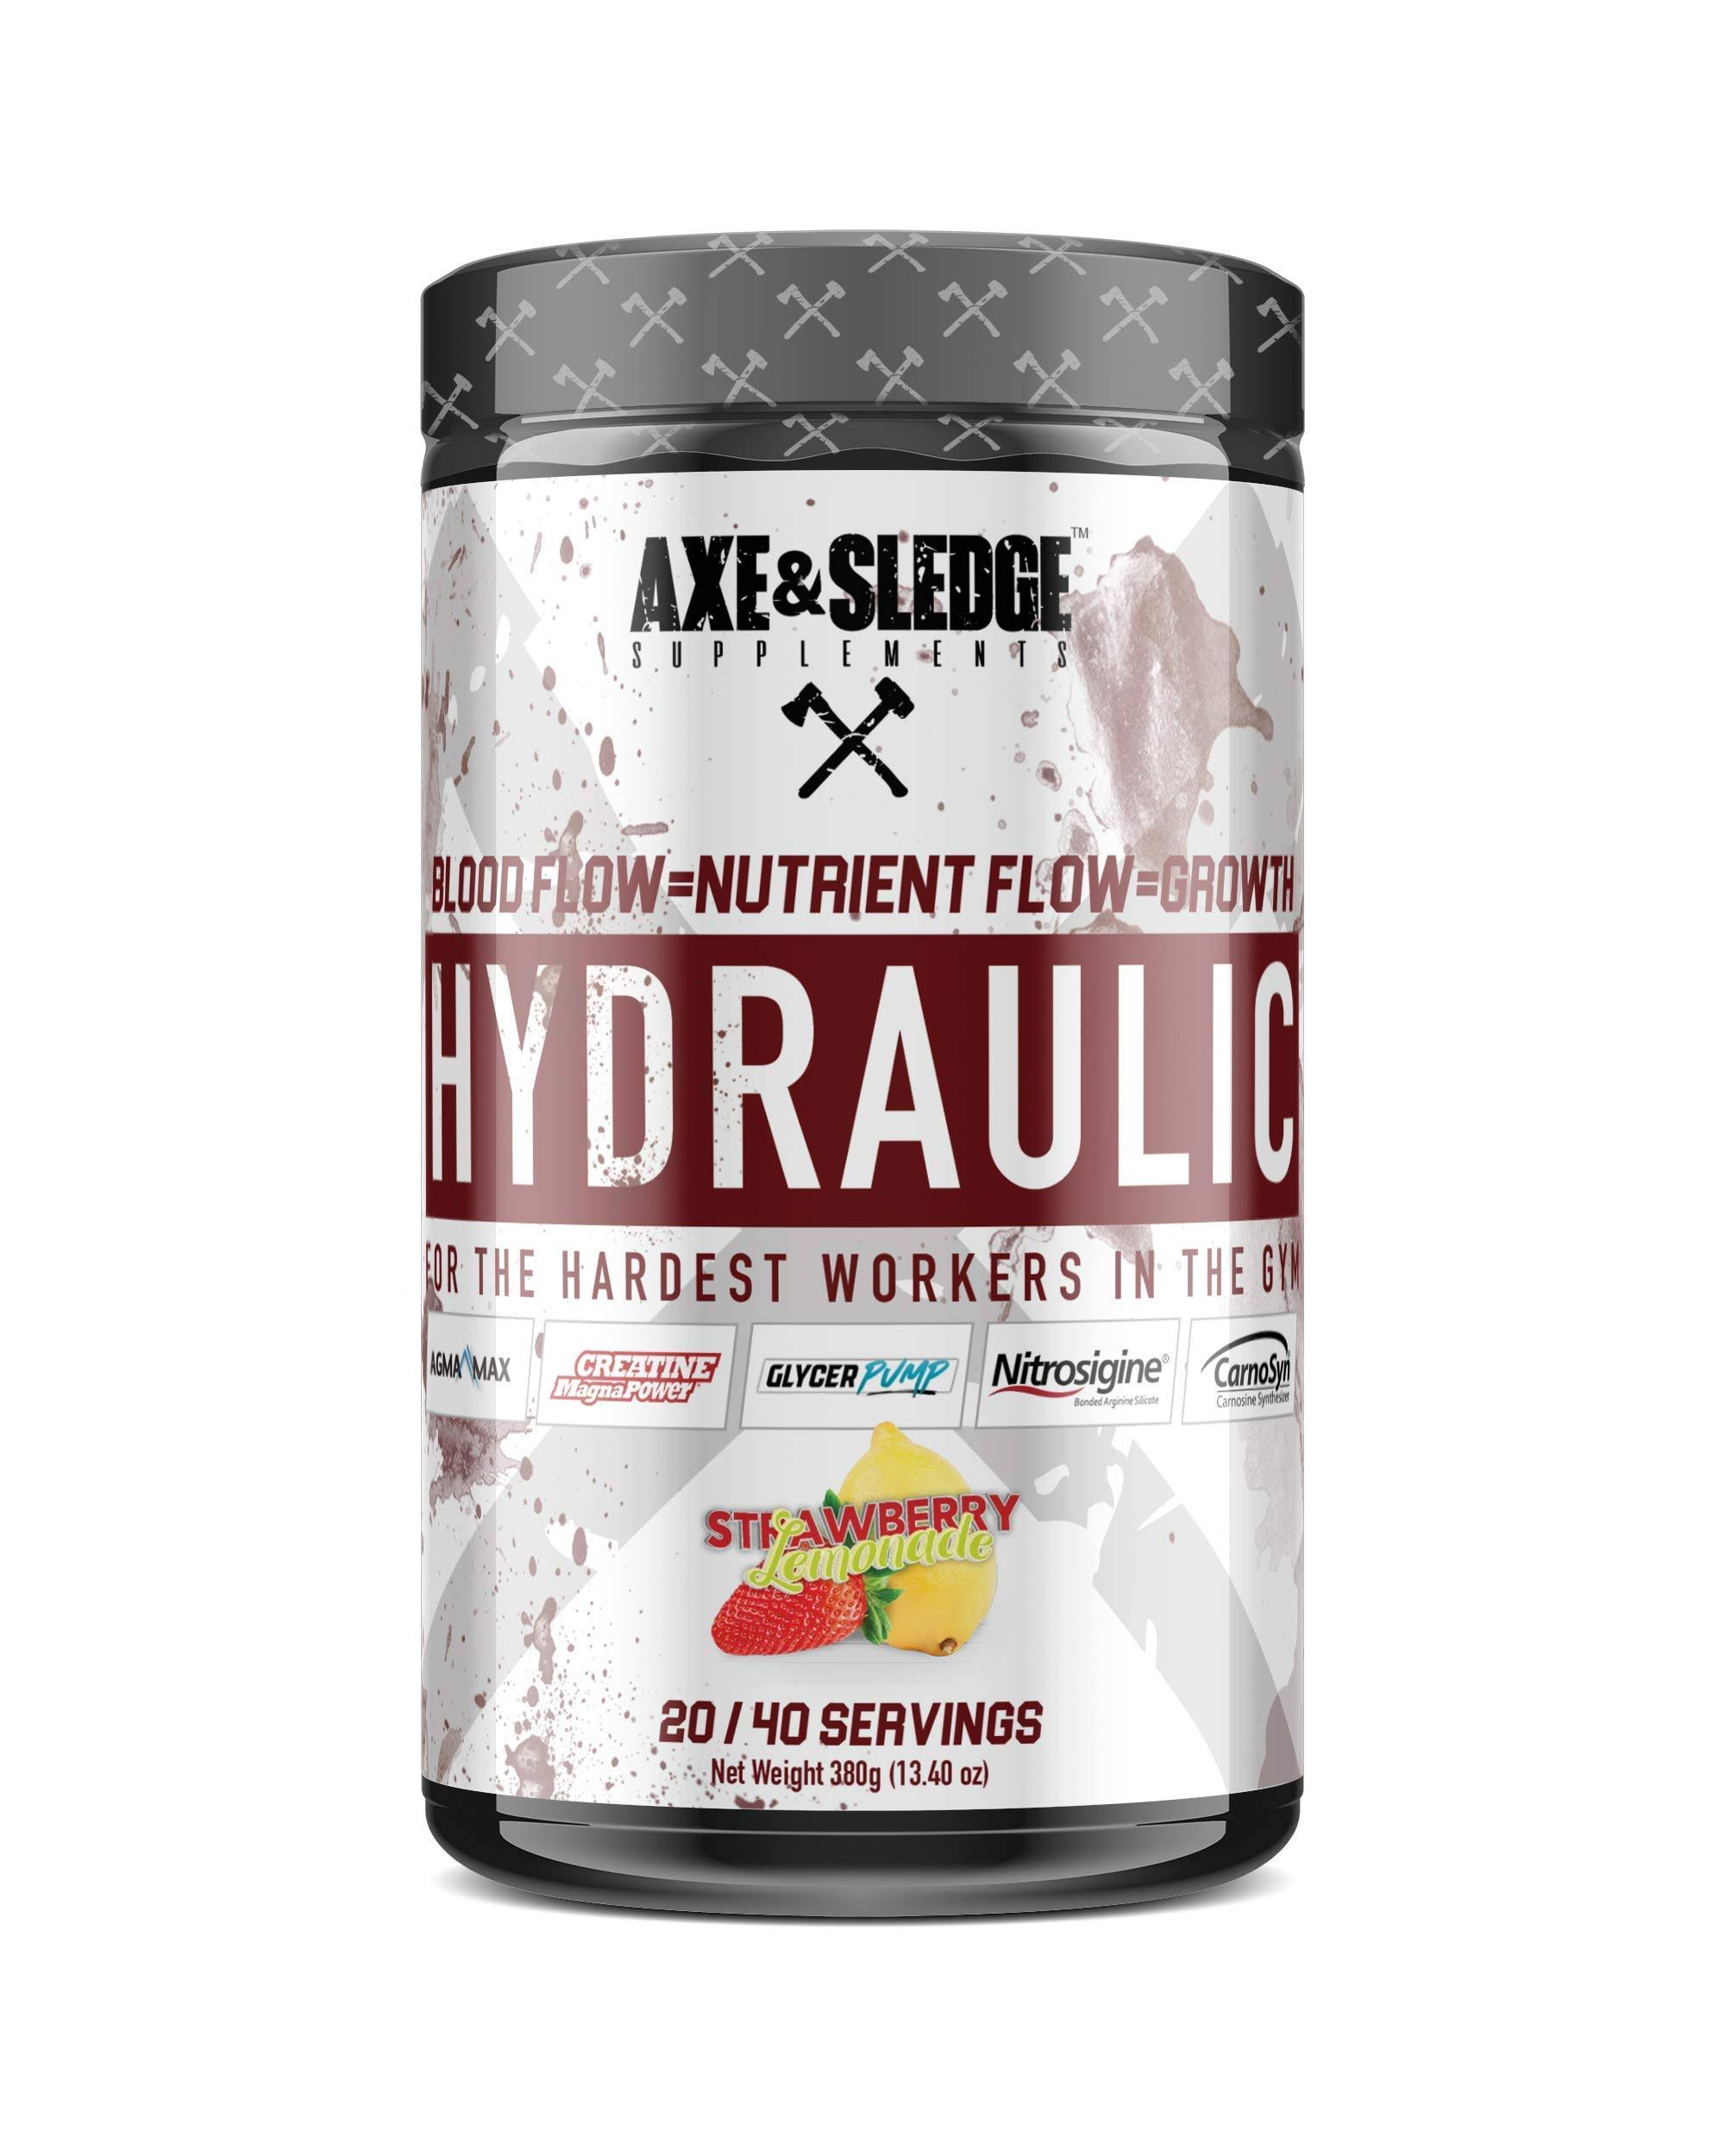 Axe & Sledge Hydraulic Strawberry Lemonade